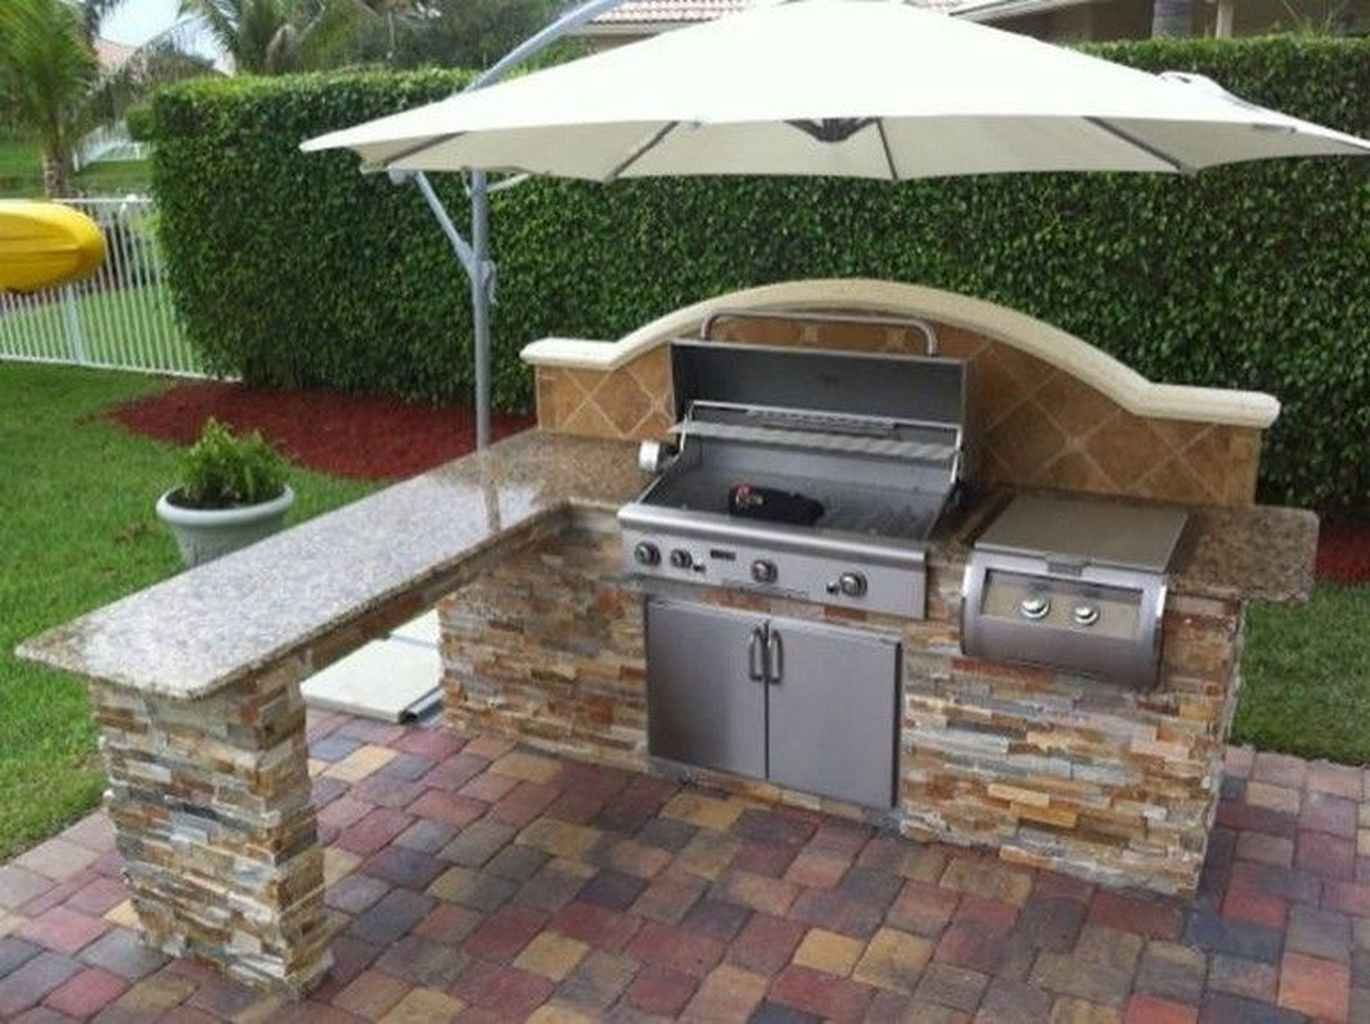 58 Best Outdoor Kitchen And Grill For Summer Backyard Ideas In 2020 Outdoor Kitchen Patio Outdoor Kitchen Design Outdoor Bbq